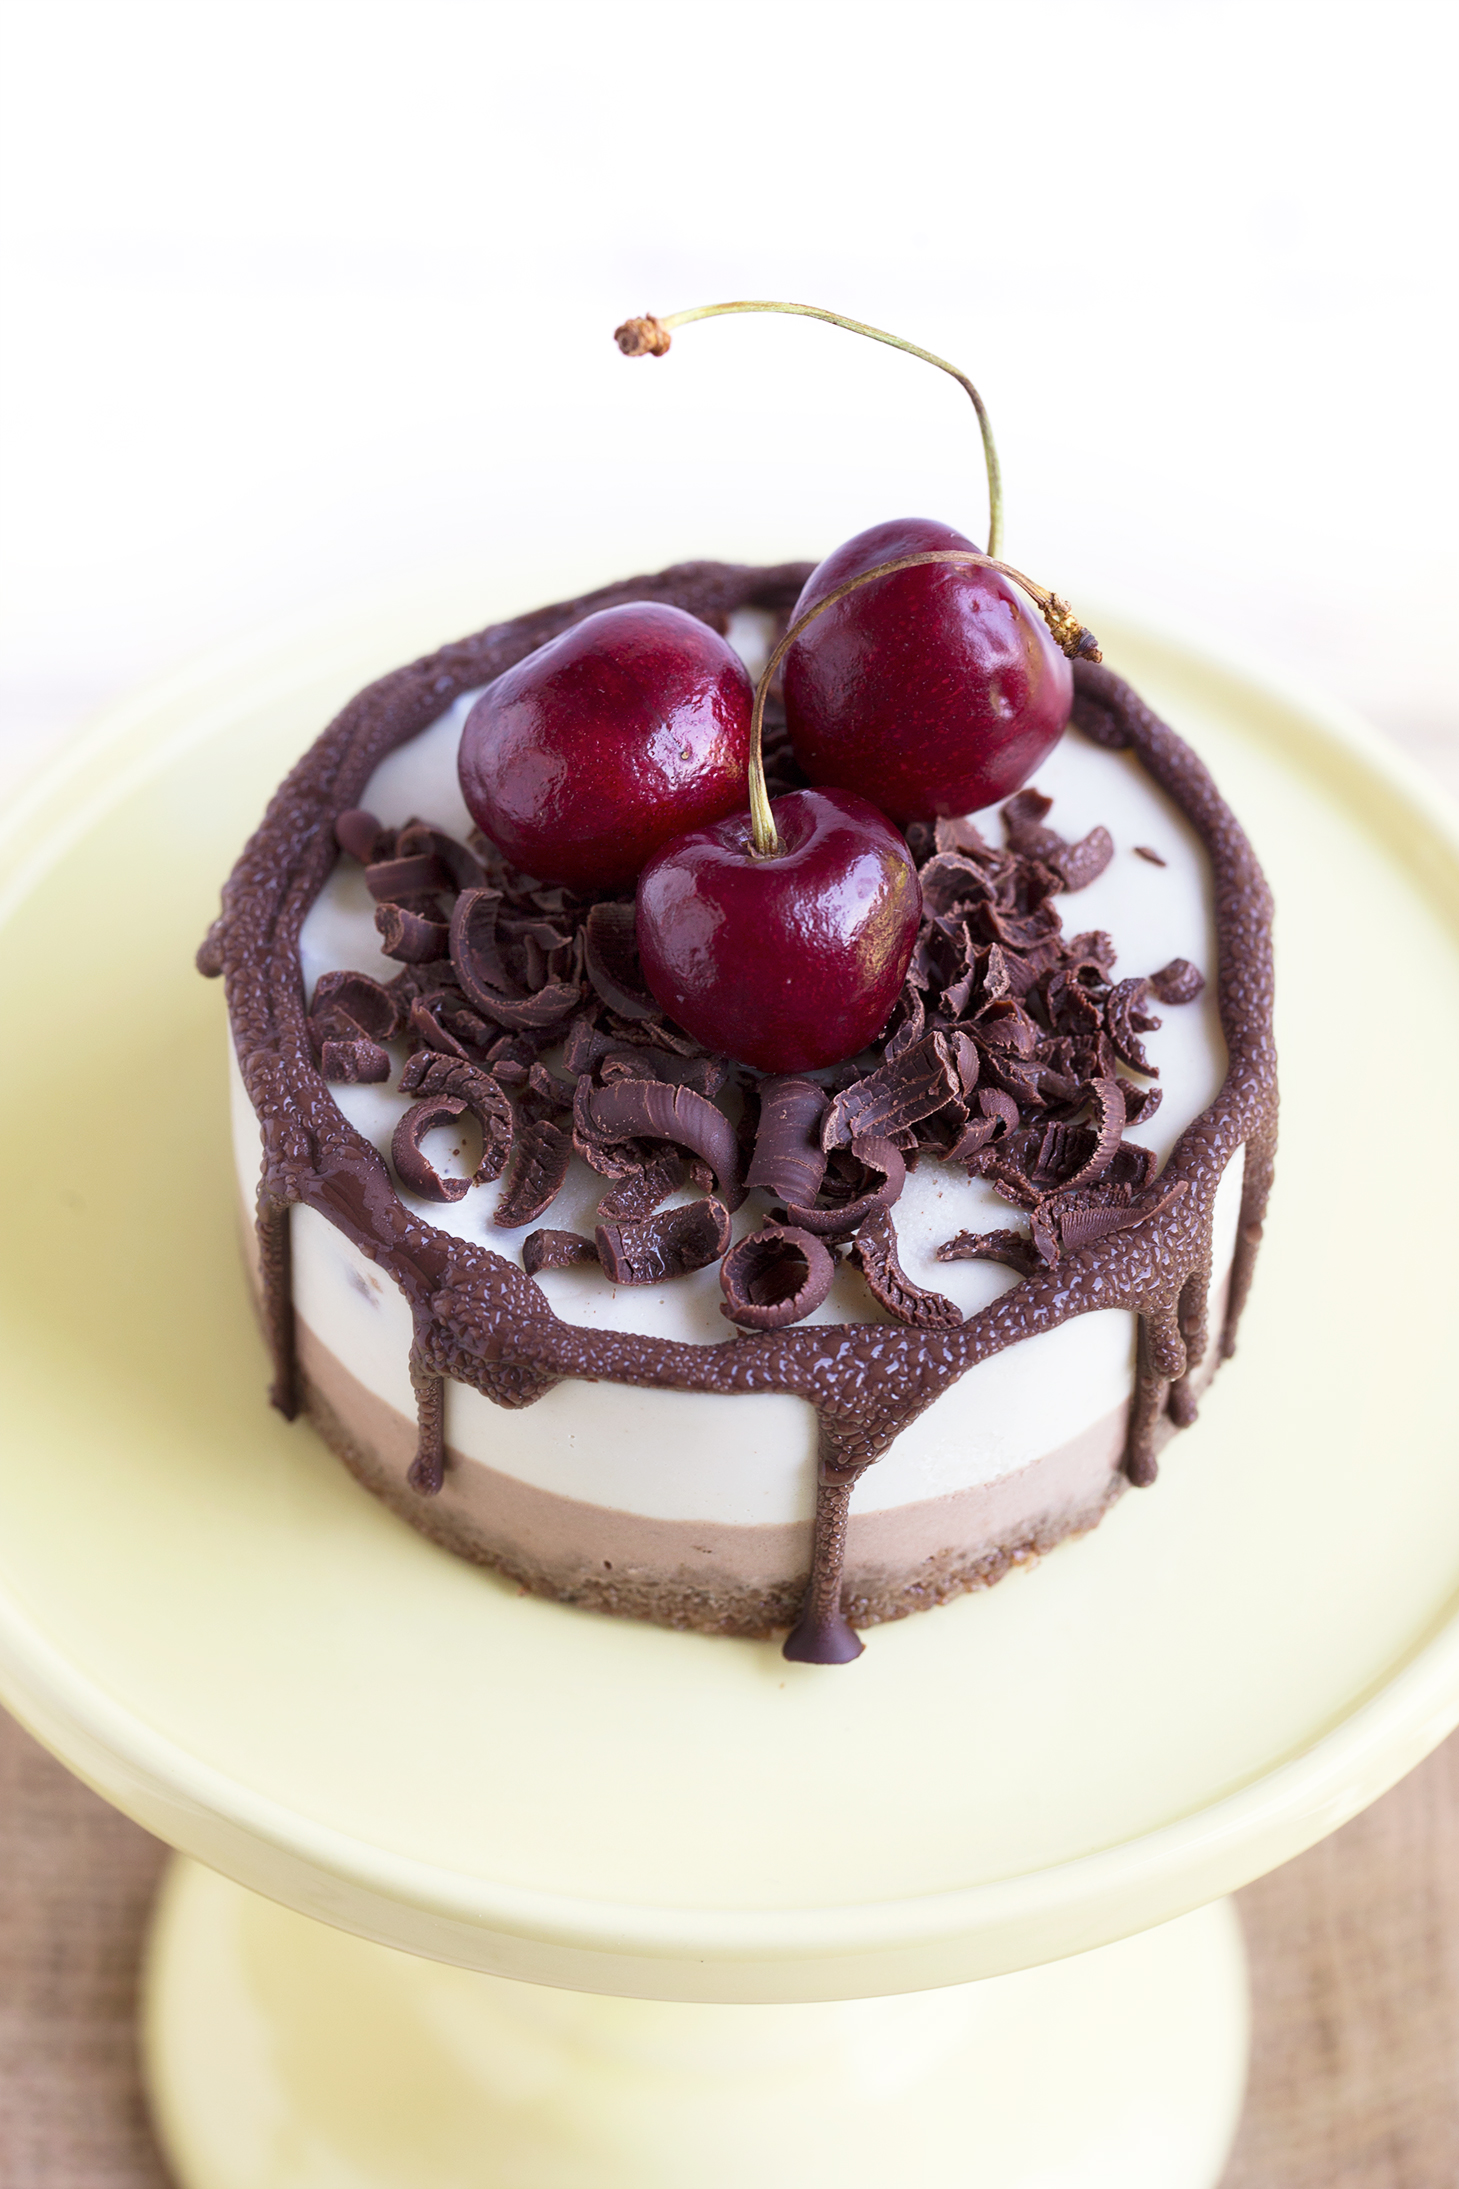 The Black Forest cake made vegan, gluten free and raw ! How about that ...